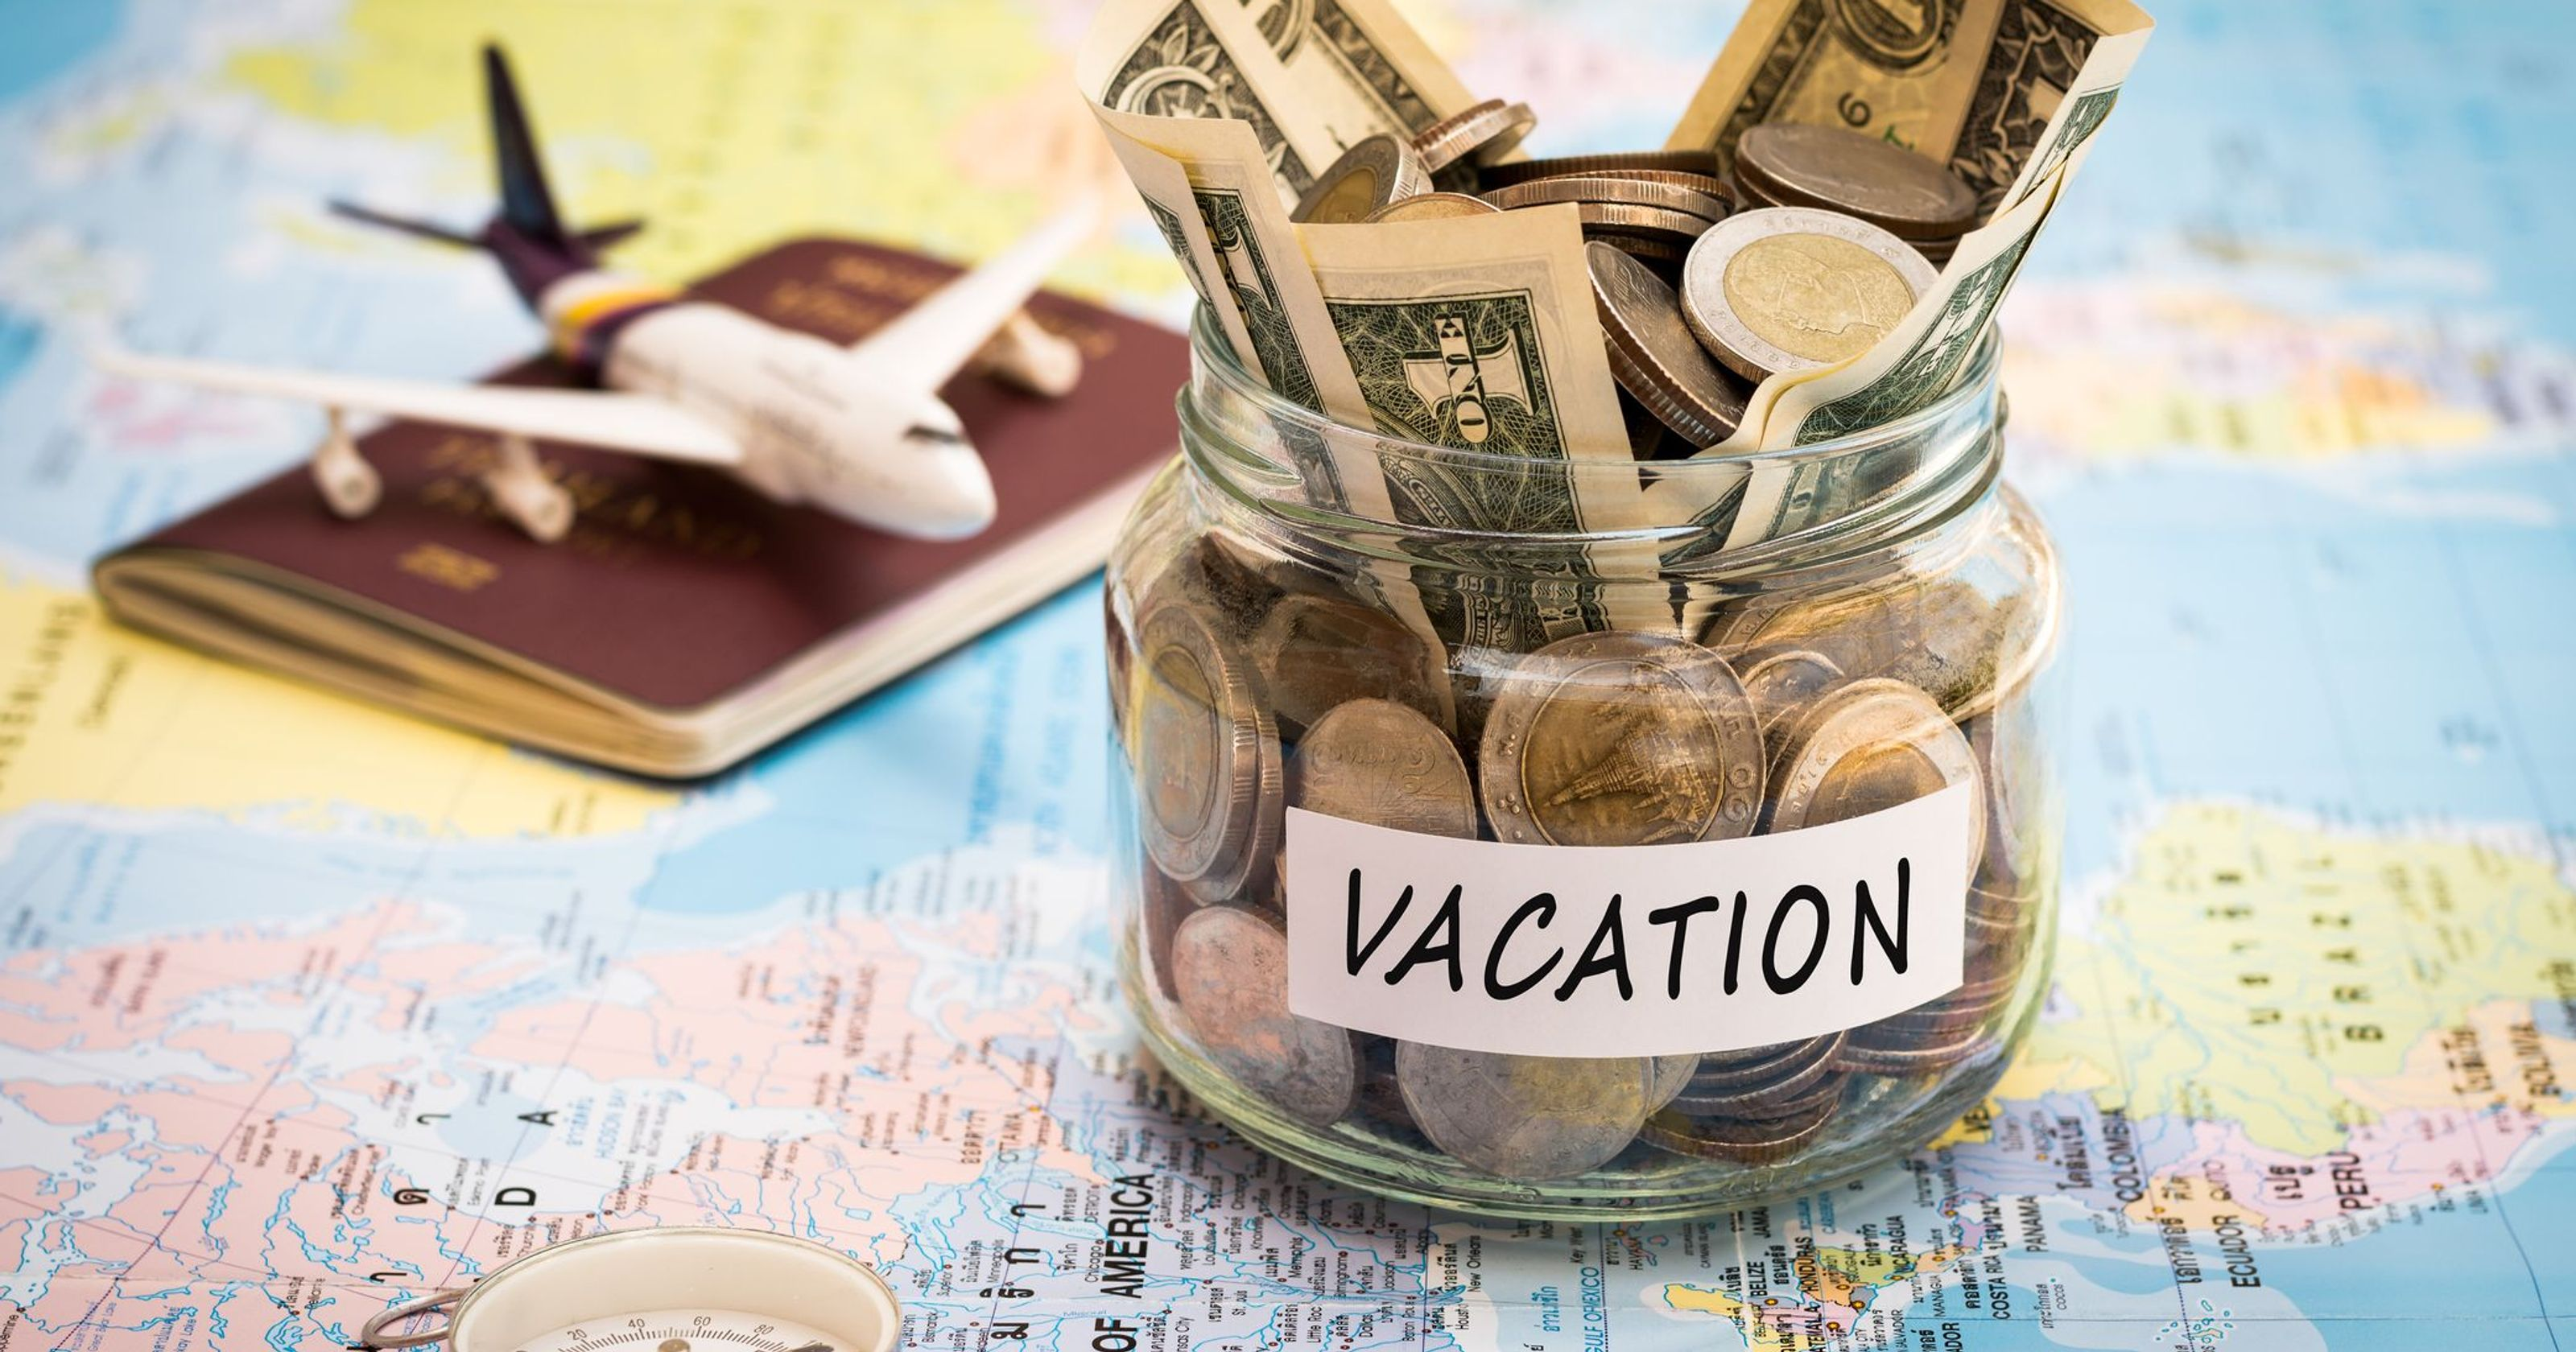 How to Get Need Quick Cash for Your Travel Fund